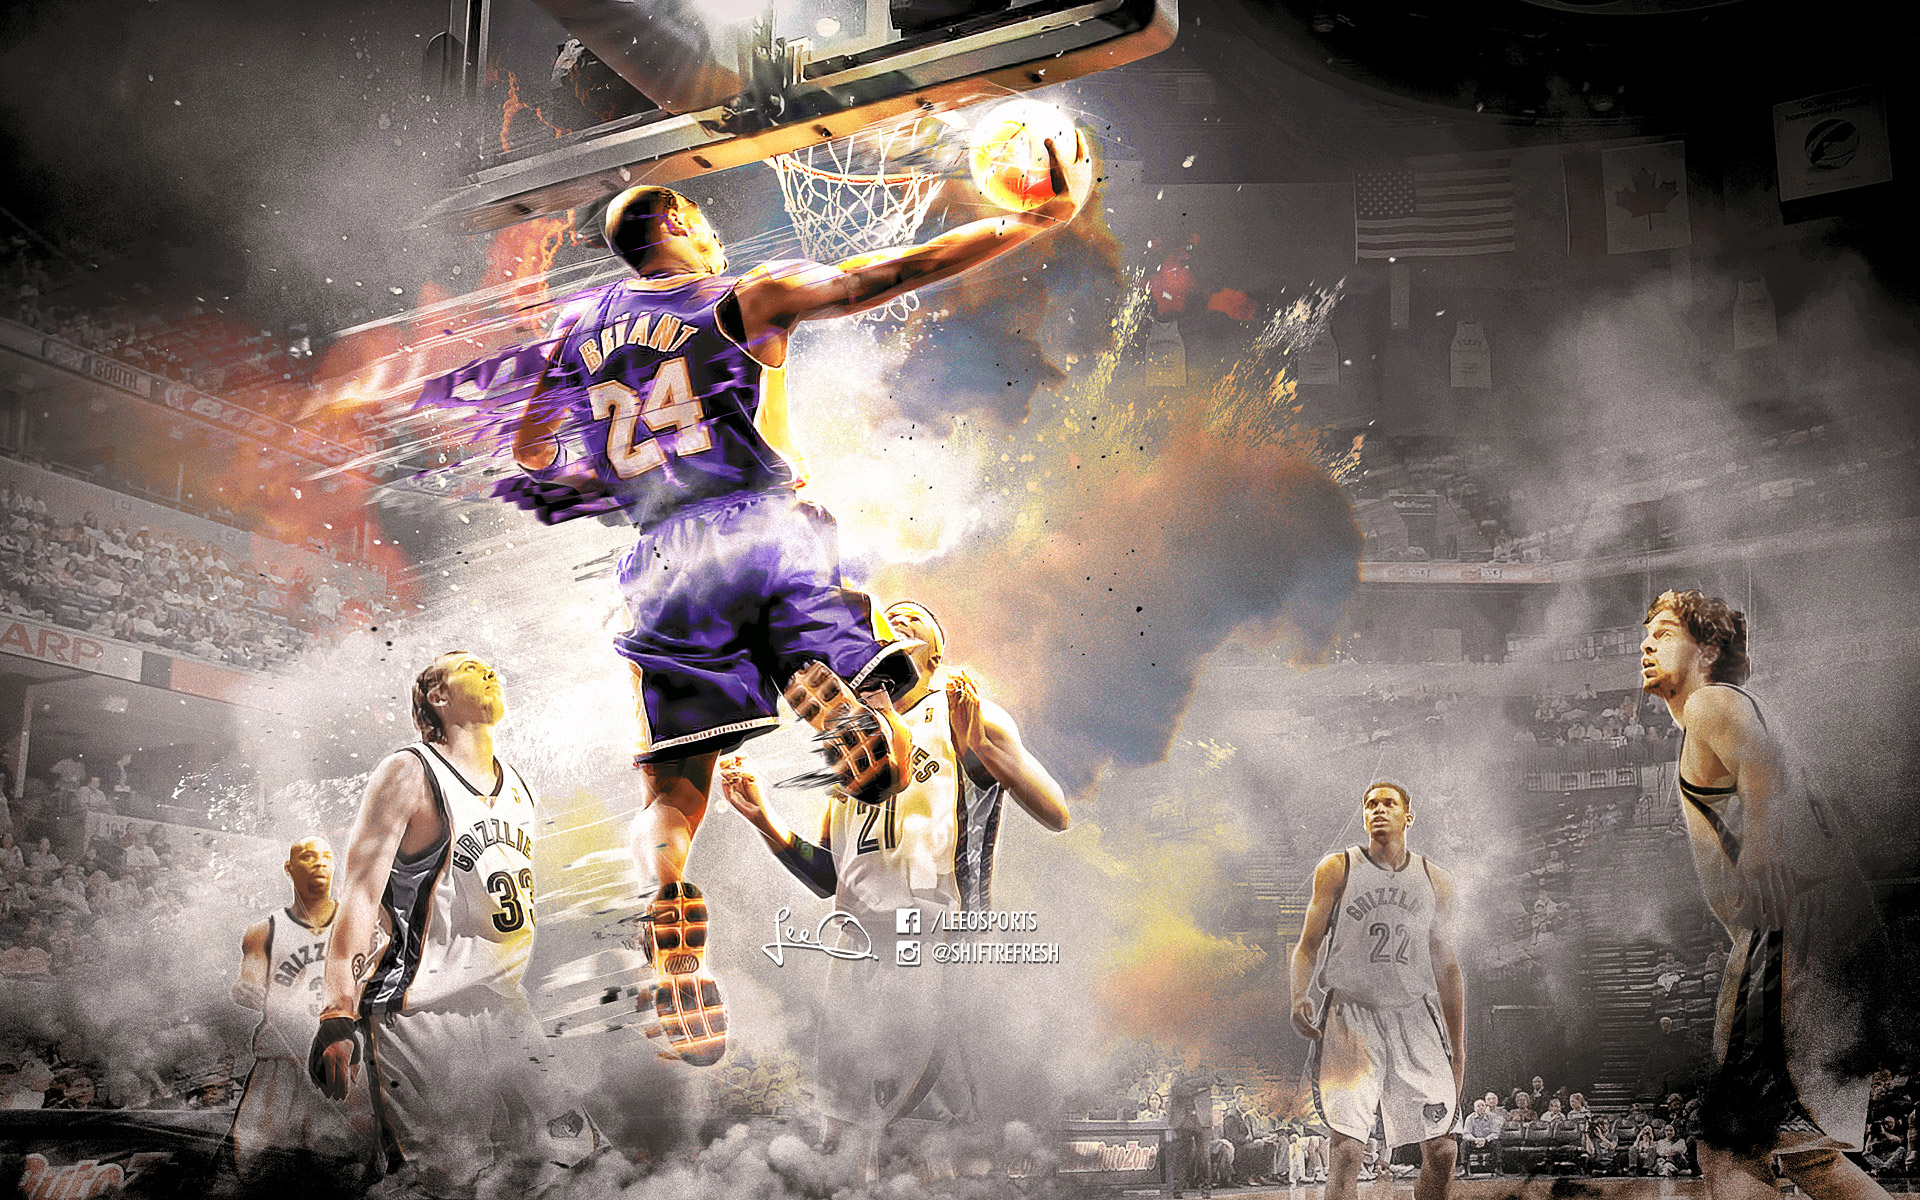 Kobe Bryant HD Wallpaper | Background Image | 1920x1200 | ID:776029 - Wallpaper Abyss